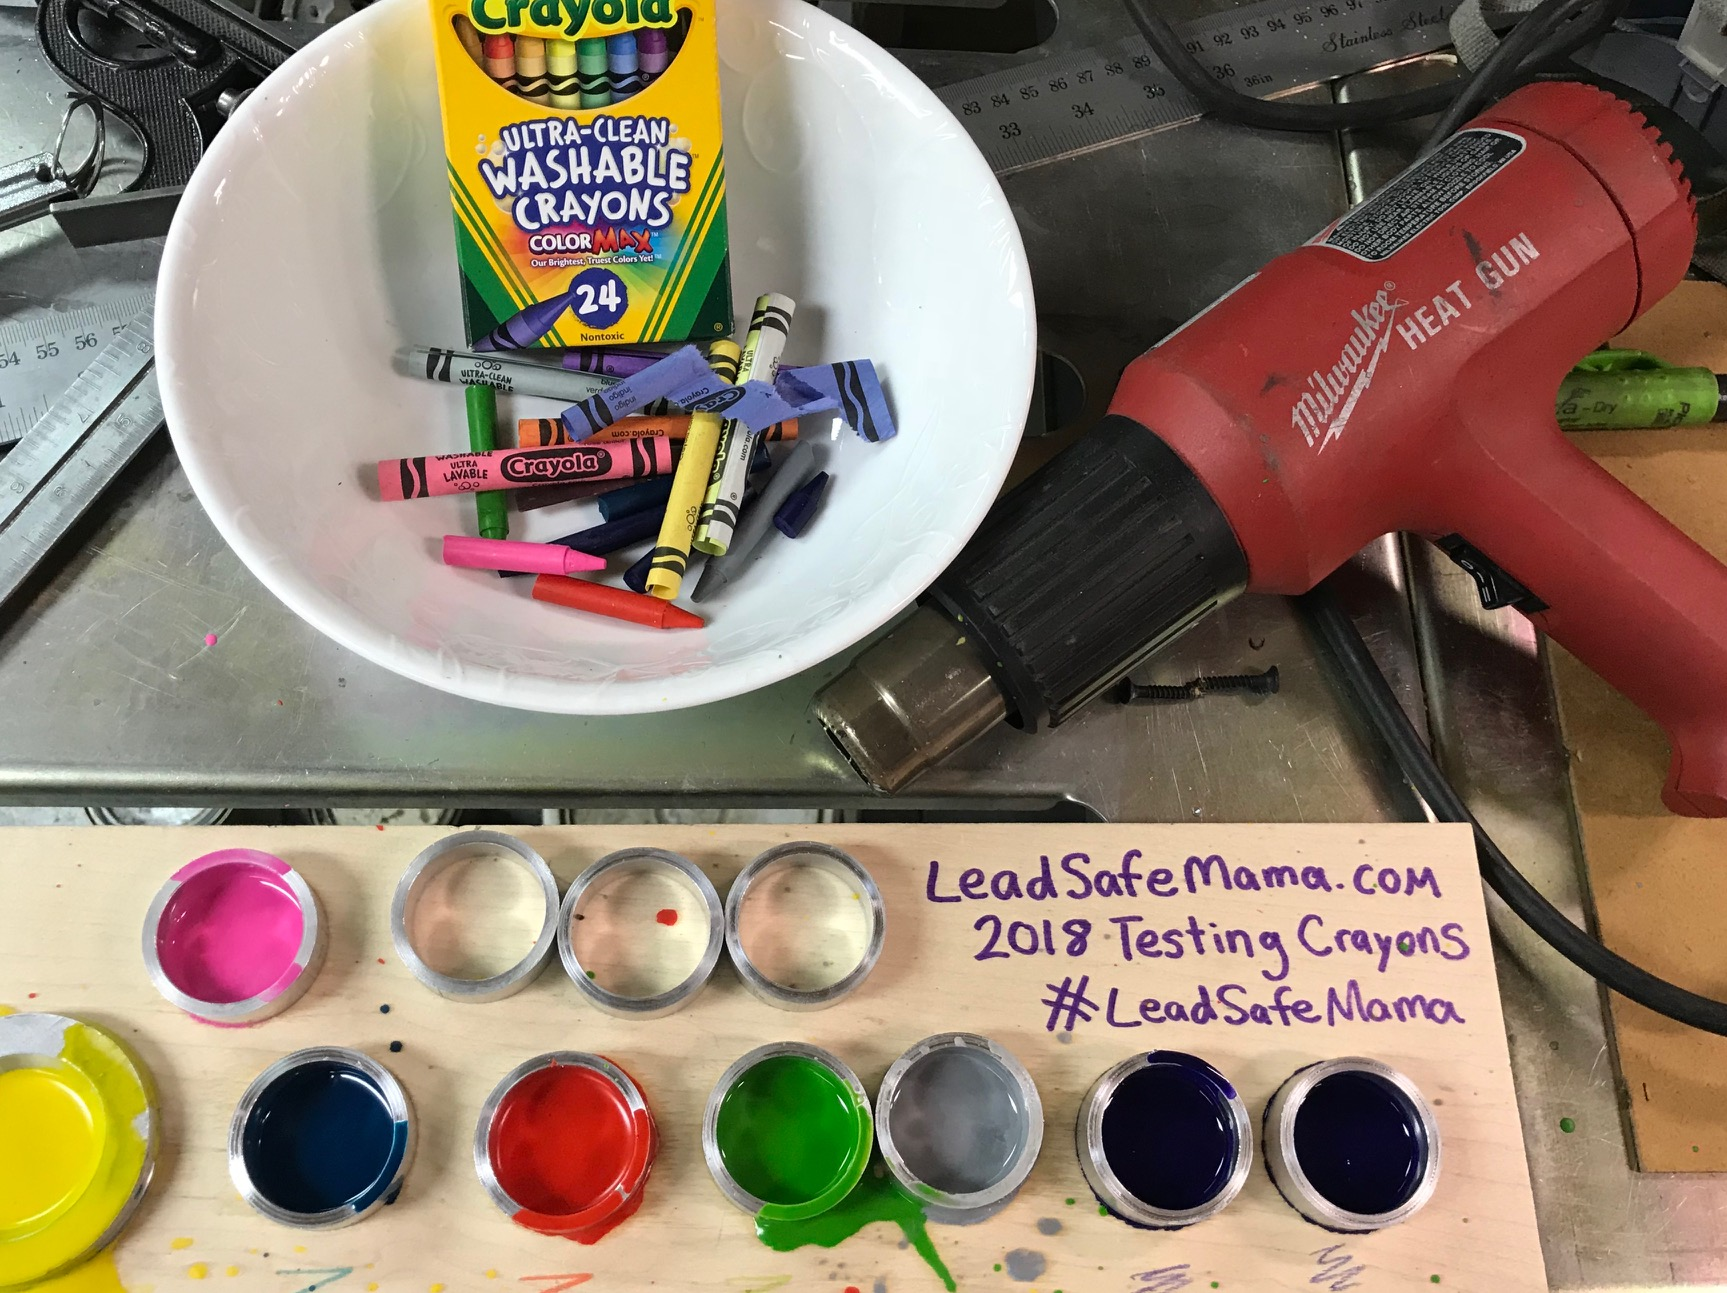 What did you find when you tested Crayola crayons for lead (Pb)?, 2018